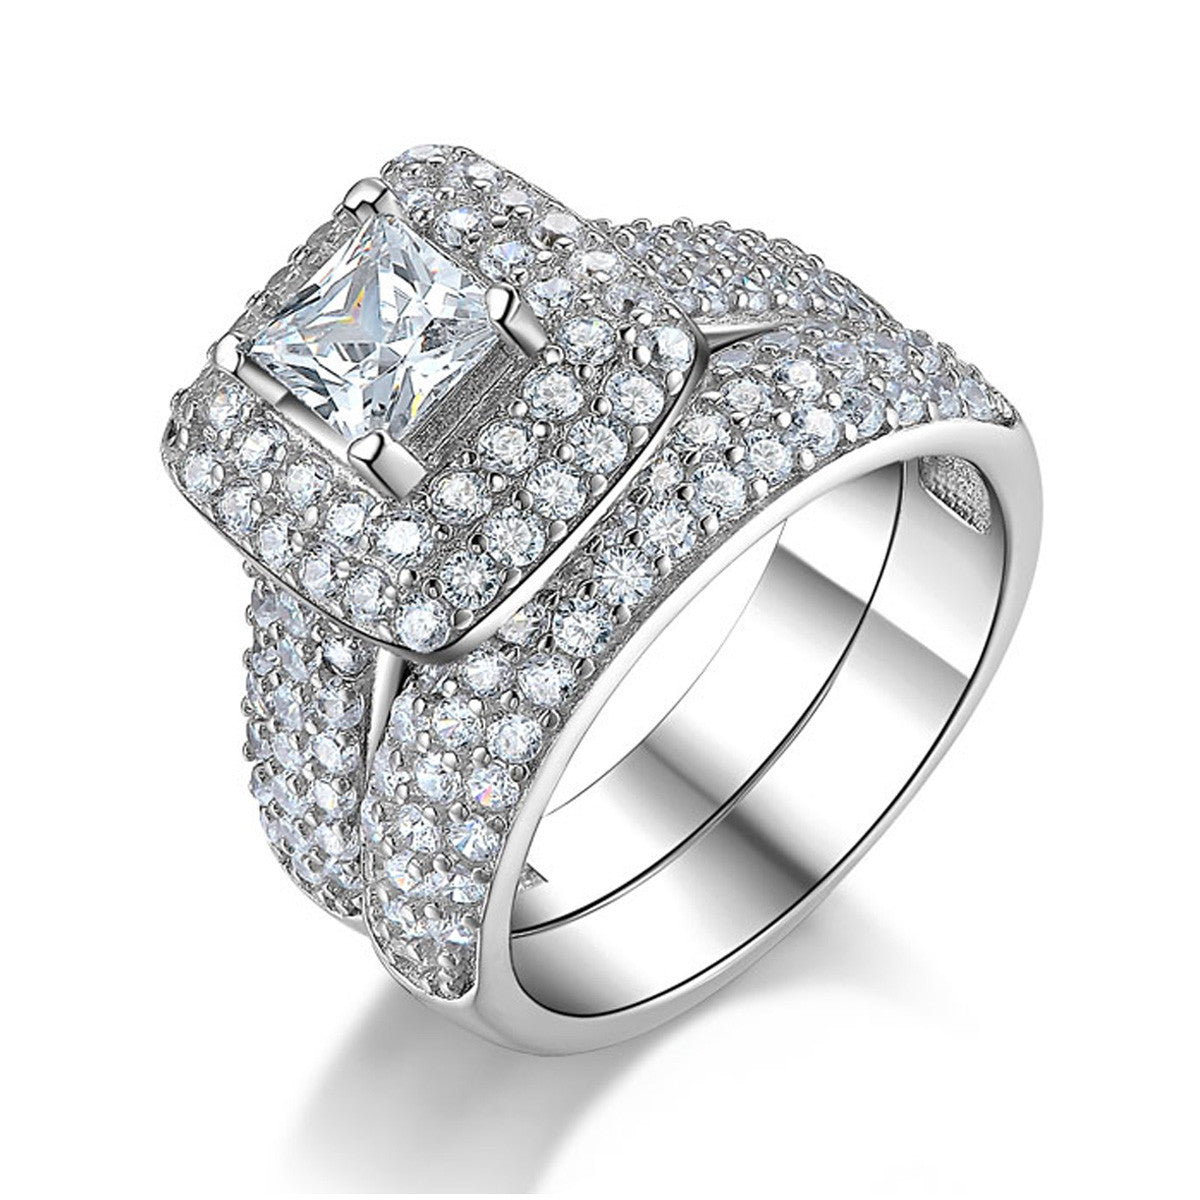 R3400S TWLLE Jewelry Affordable Sterling Silver Engagament